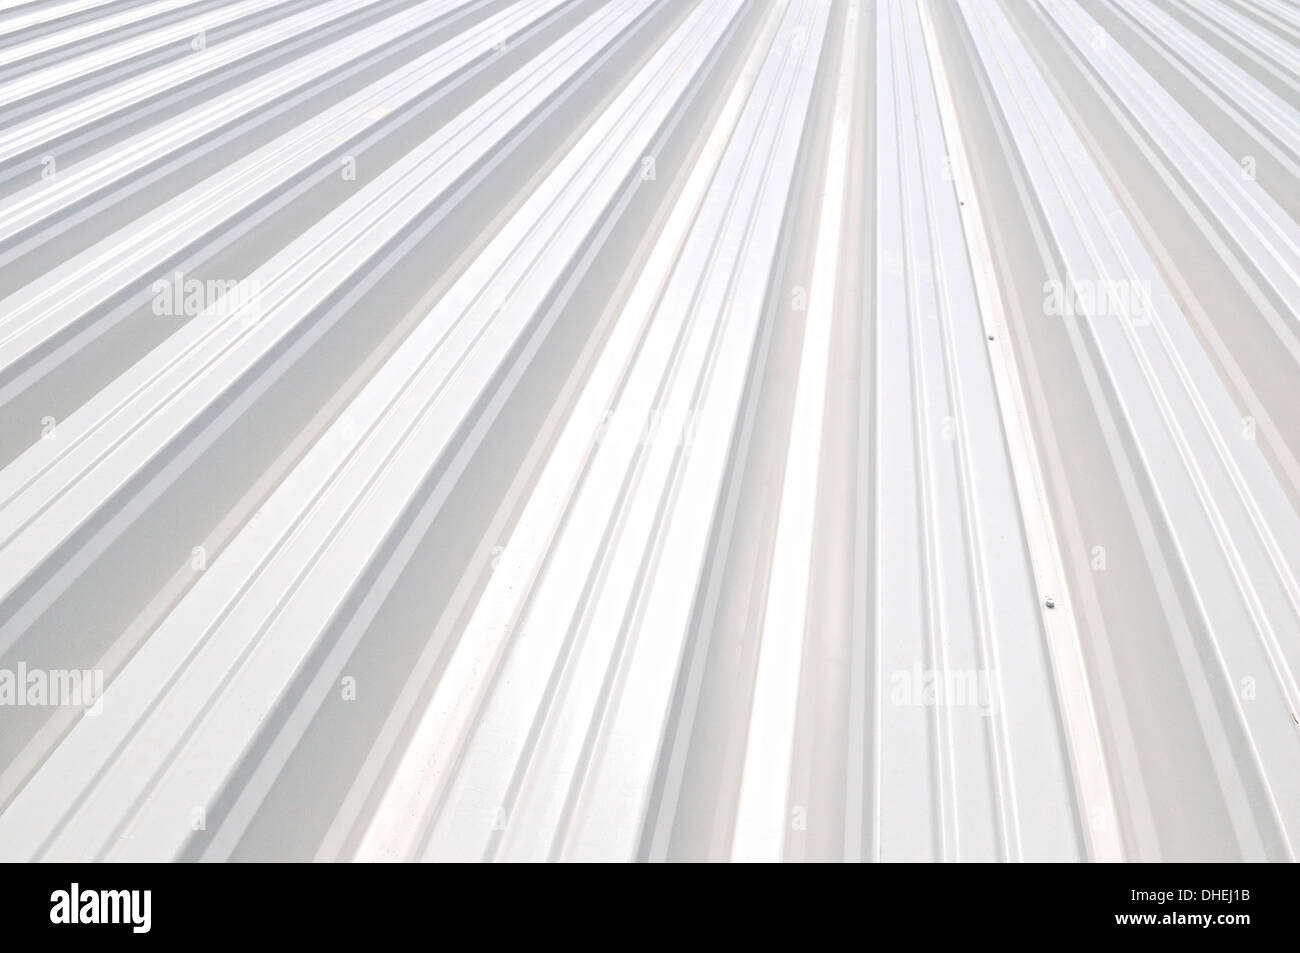 Trapezoidal sheet - Stock Image